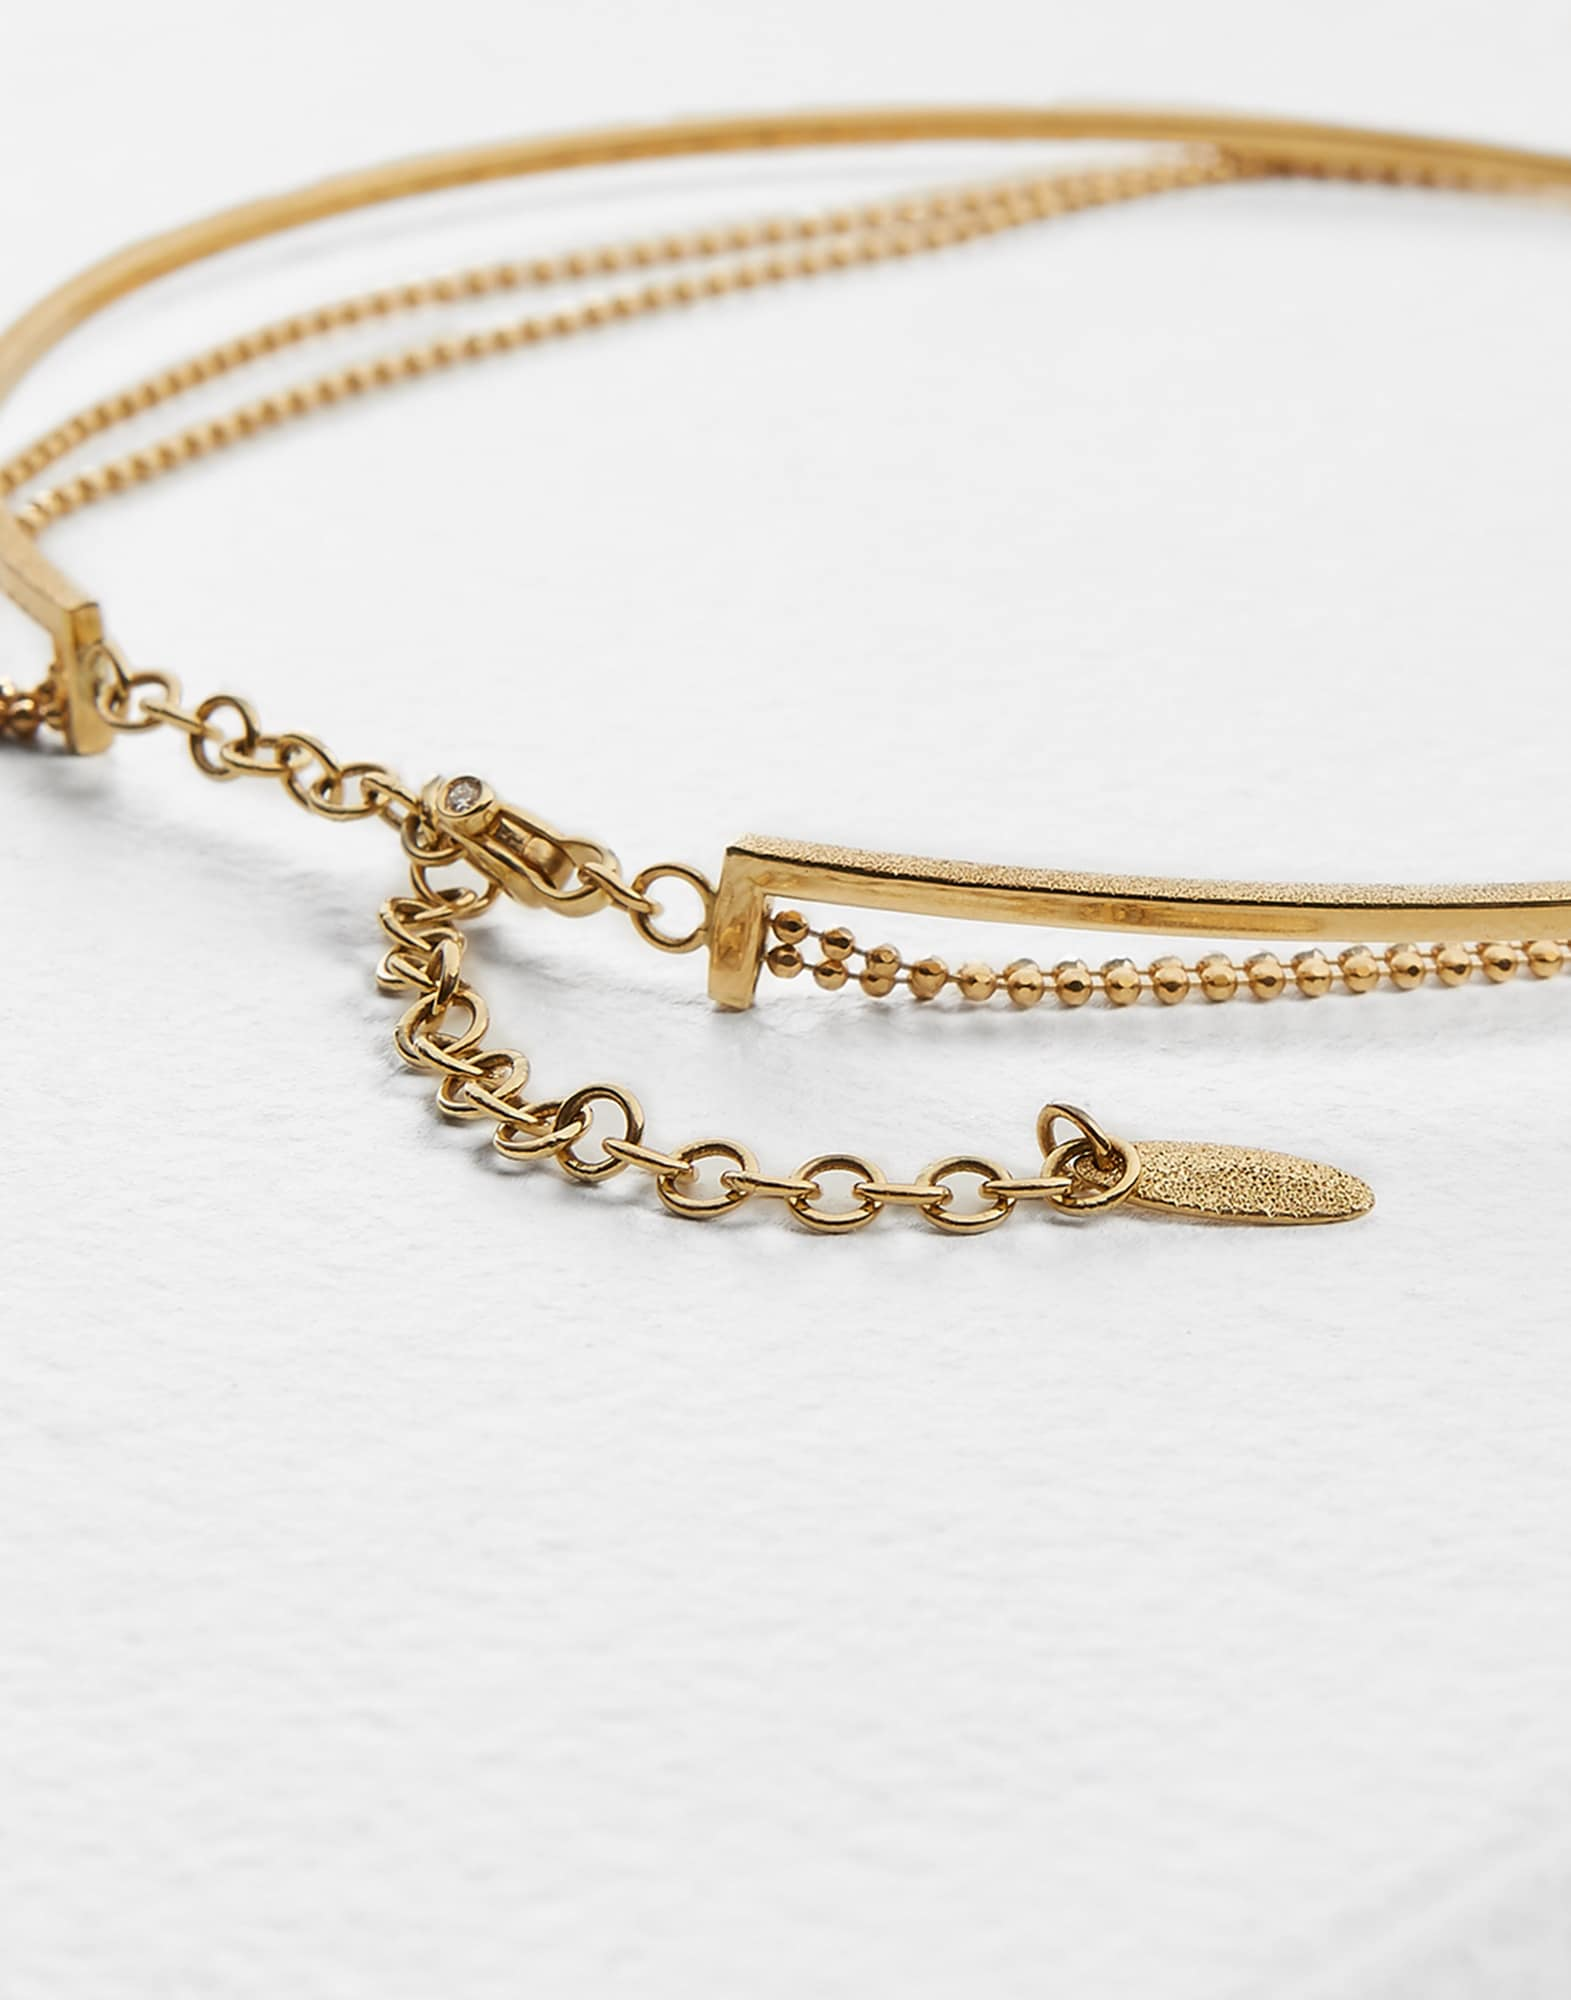 Necklace Gold Woman 2 - Brunello Cucinelli